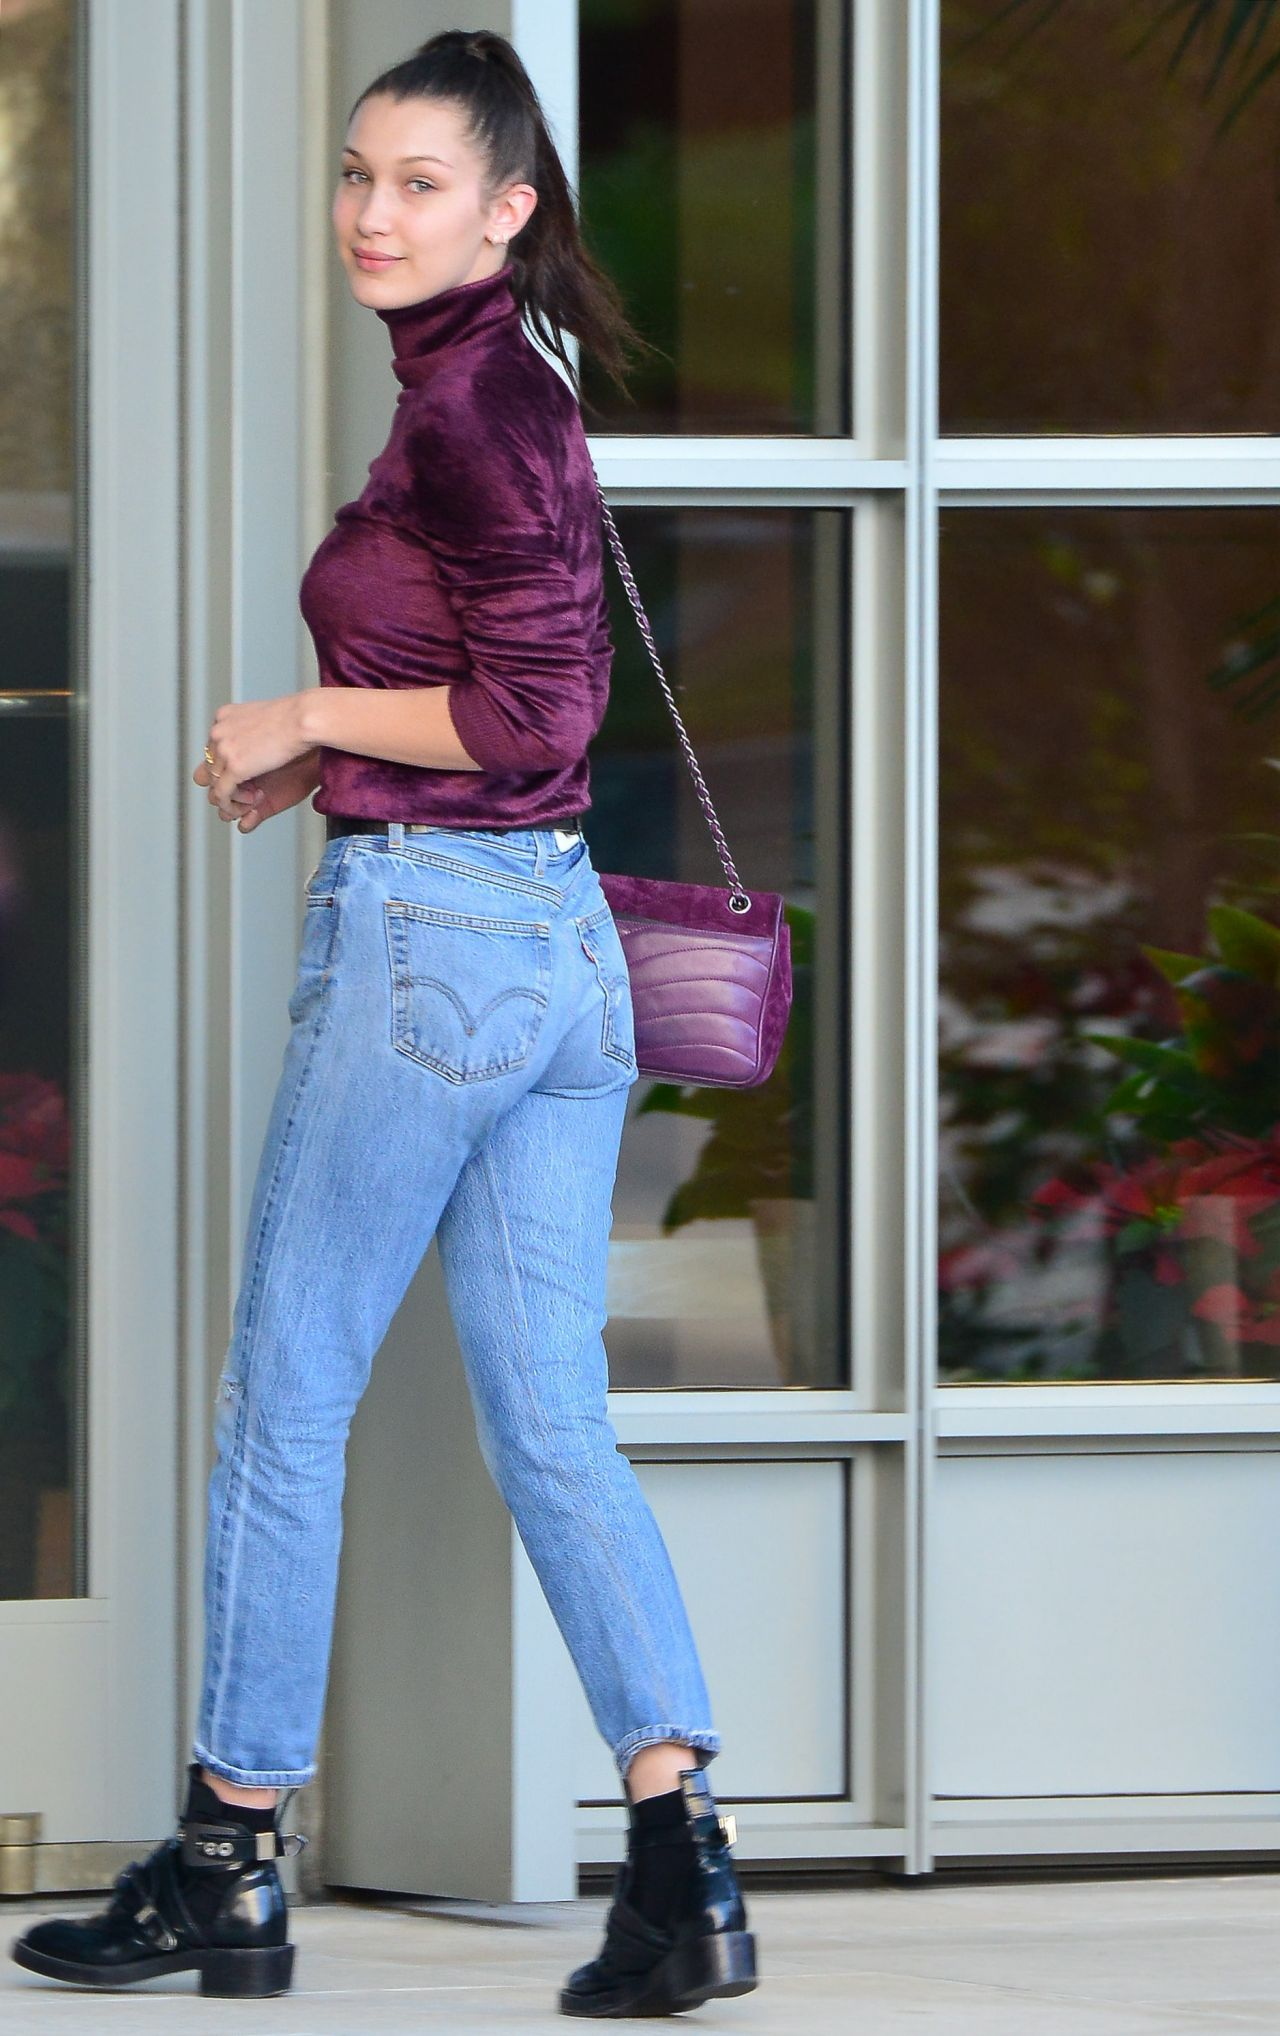 Bella Hadid Booty In Jeans Beverly Hills 12232015